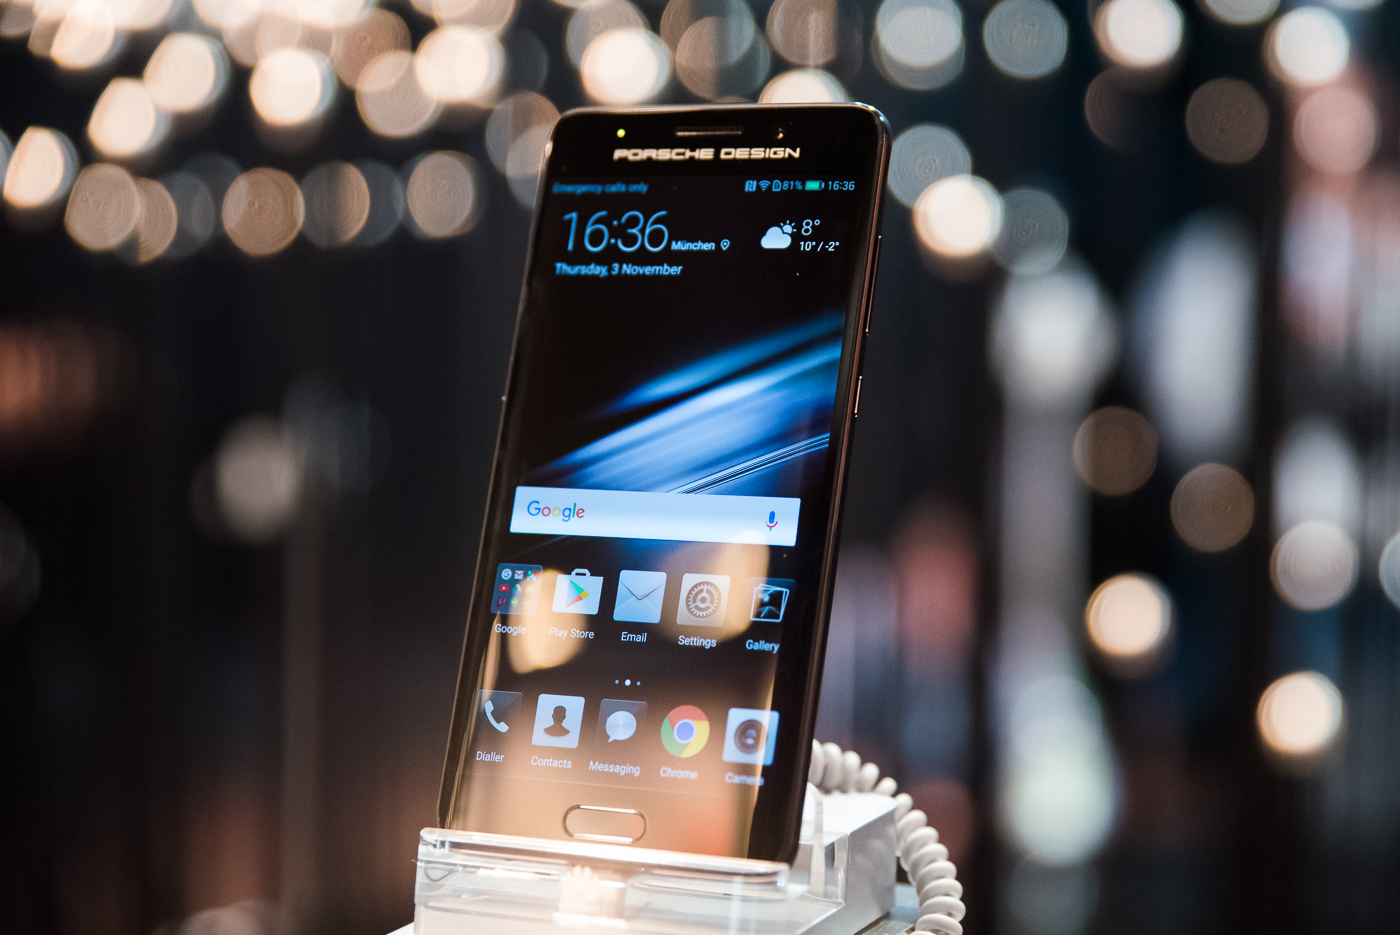 huawei-mate-9-porsche-design-3-of-6